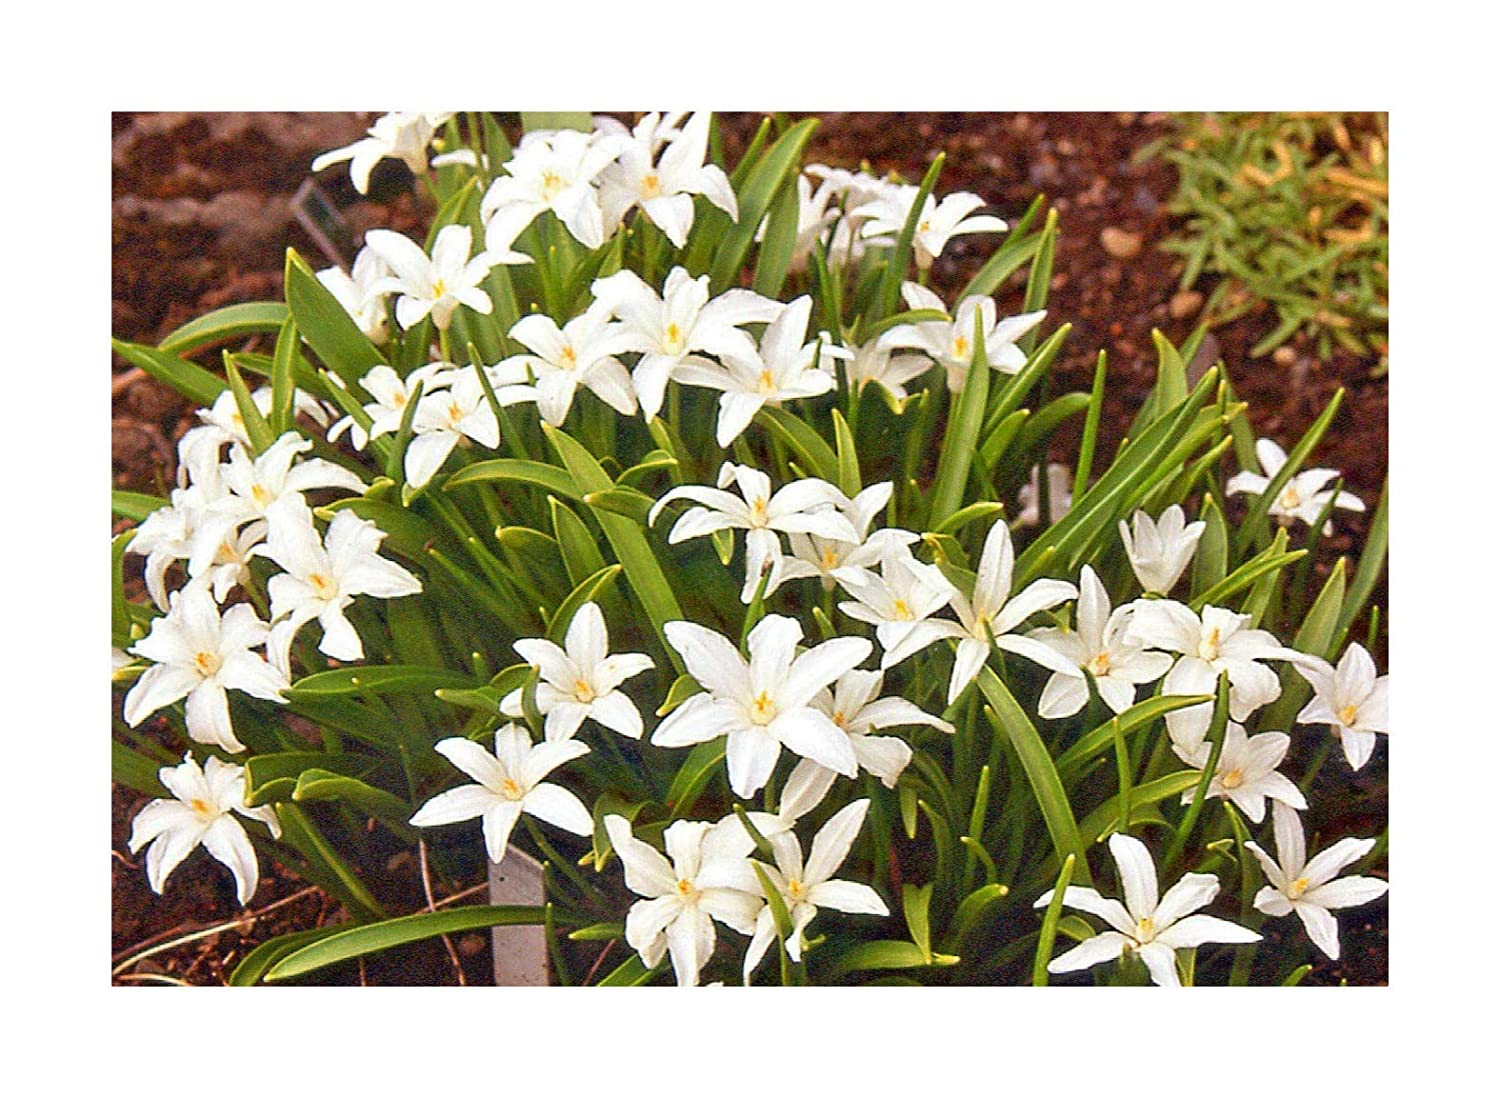 50 x Chionodoxa 'Alba' White Glory of The Snow Spring Flowering Bulbs by Plug Plants Express Limited